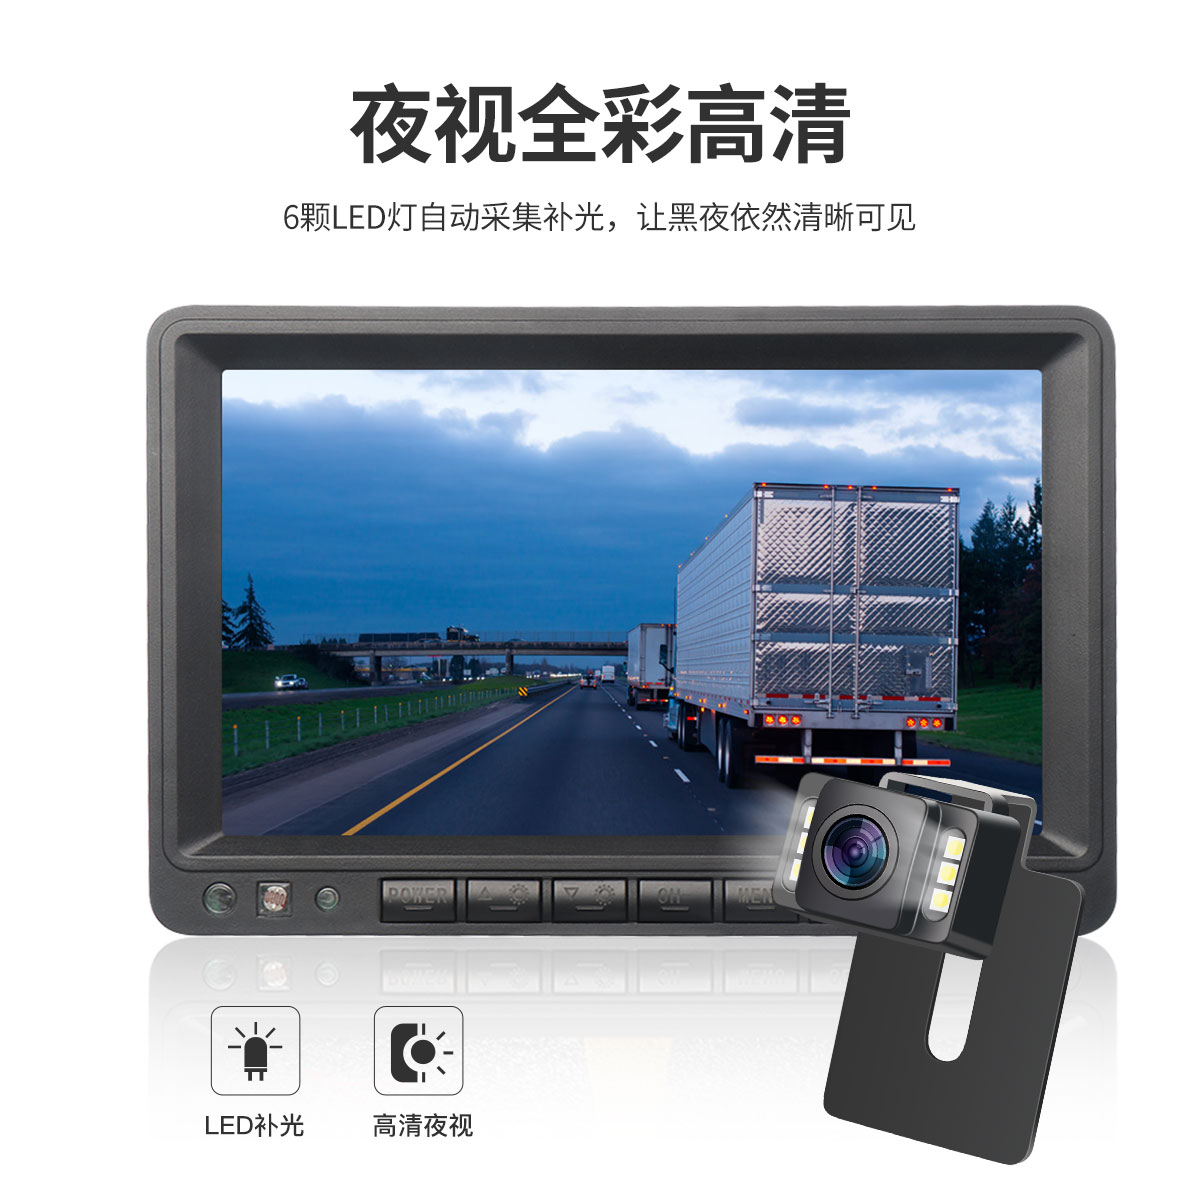 http://www.swdcam.com/data/images/product/20191029202323_855.jpg